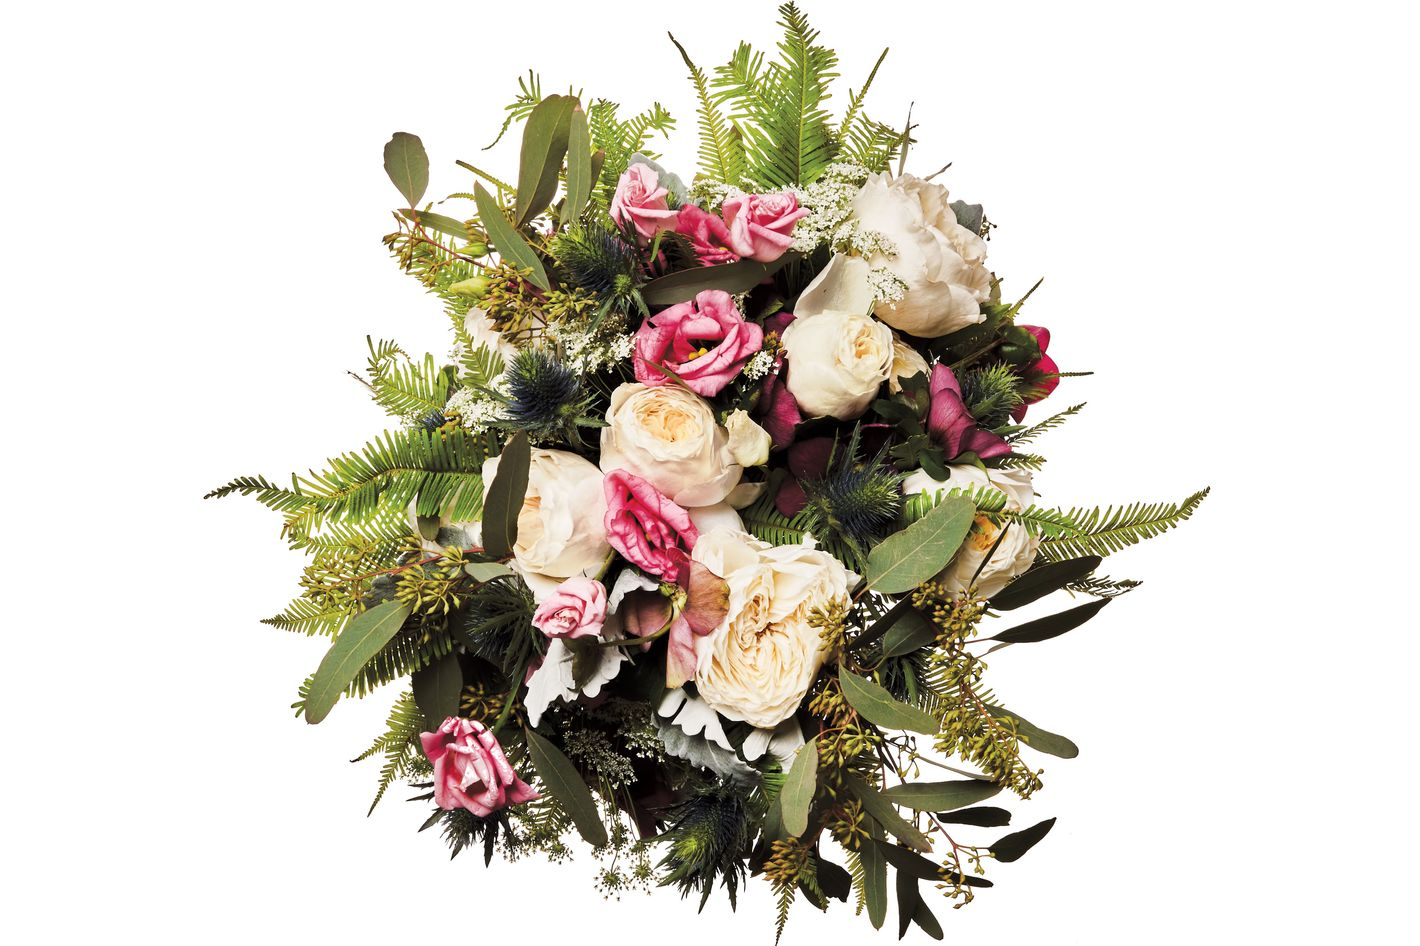 Blue thistle, hellebore, Queen Anne's lace, umbrella fern, dusty miller, lisianthus, garden rose, and seeded eucalyptus